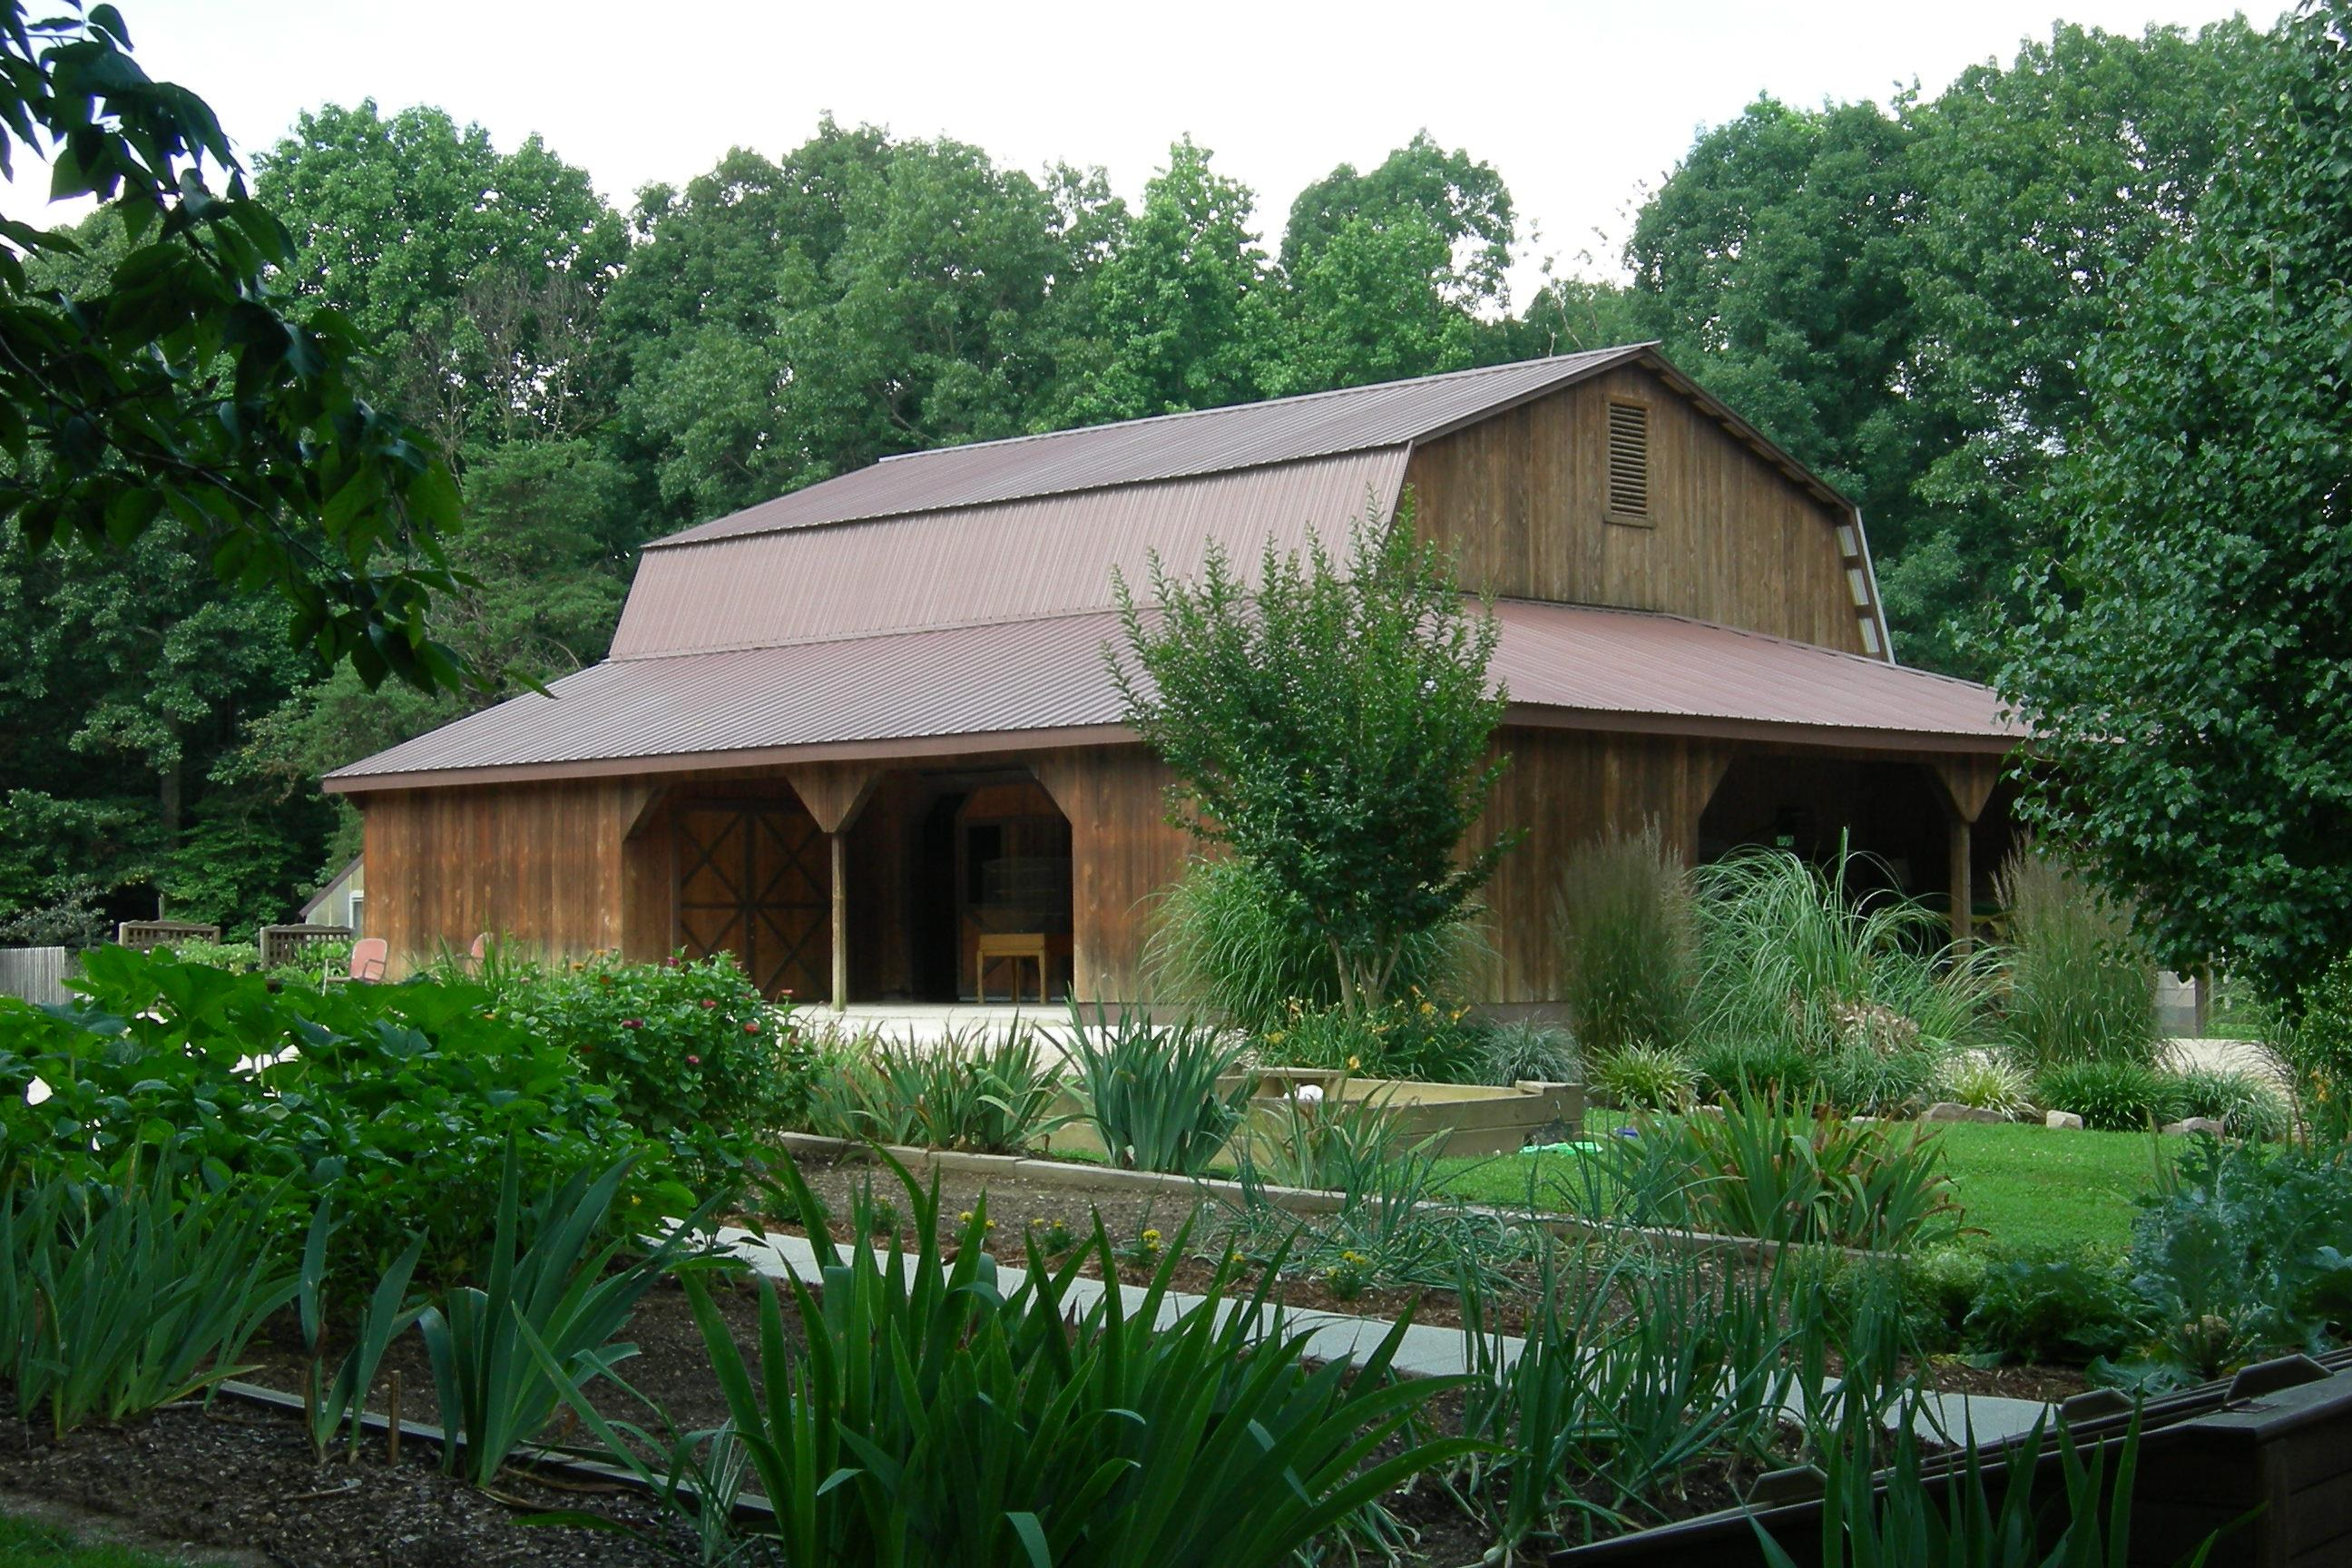 Horse Stables, Equestrian Arenas, Custom Crafted High Quality Farm Buildings in Southern MD